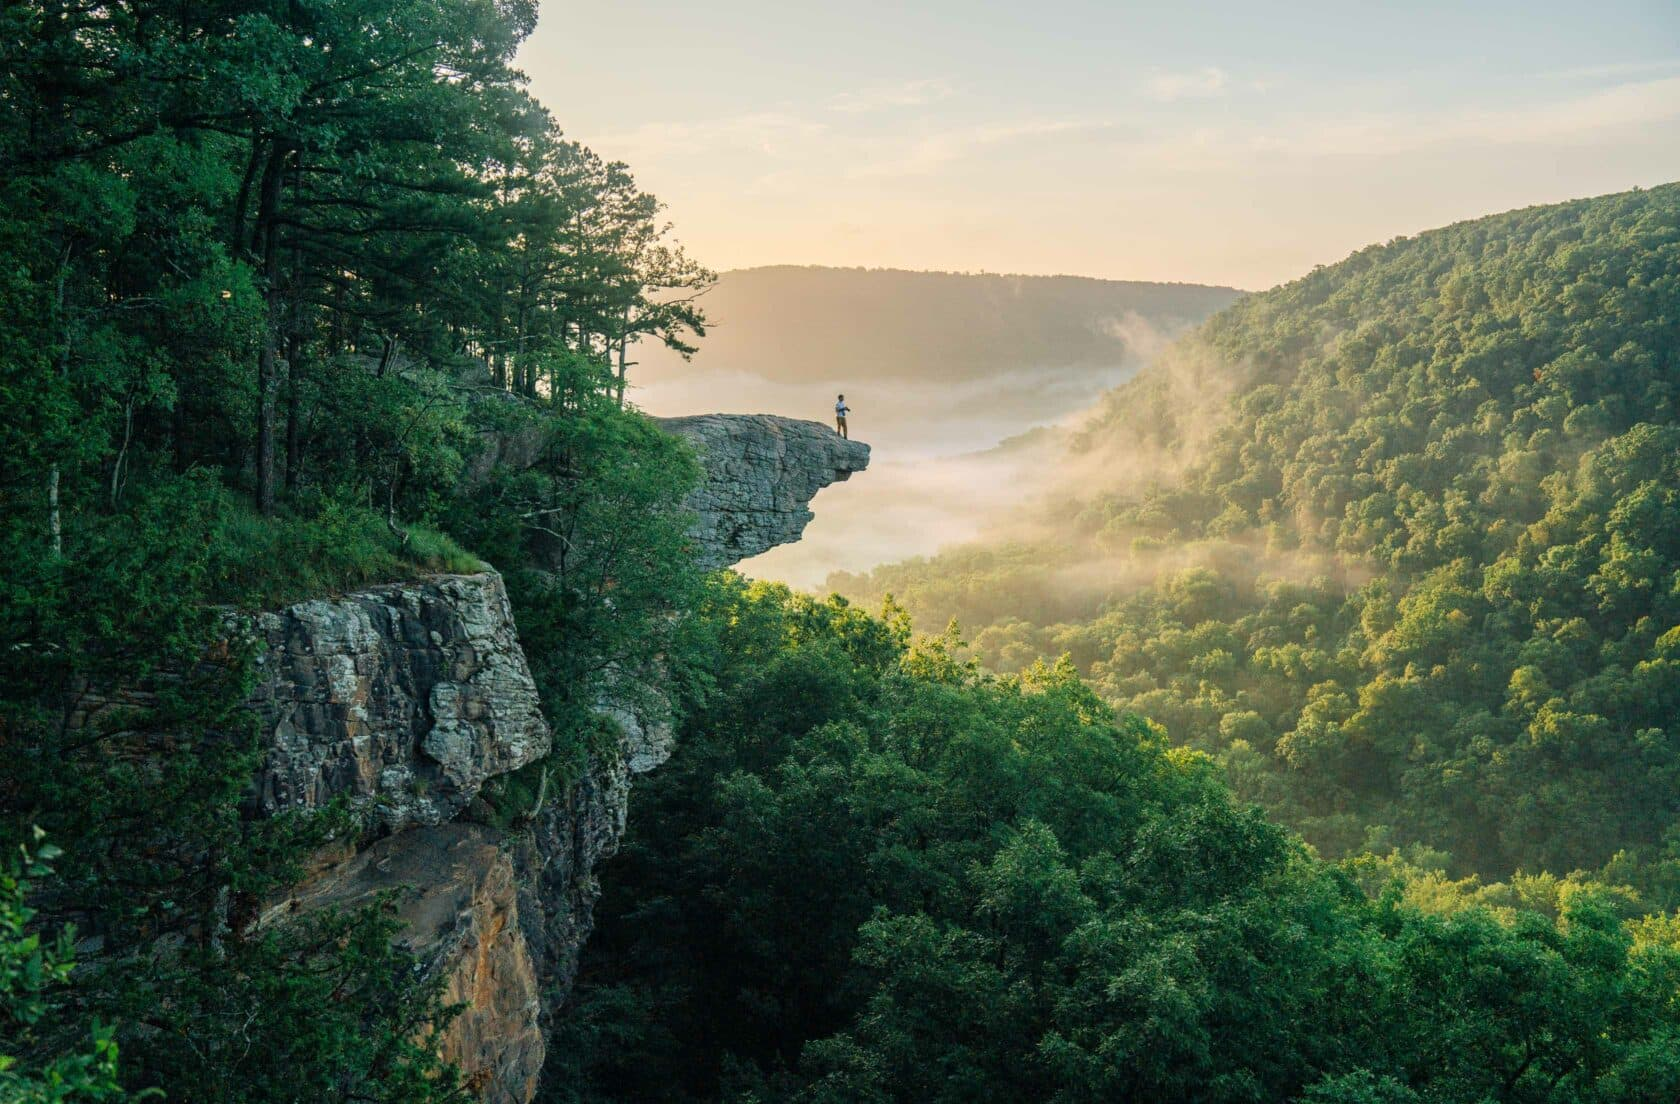 A hiker on Whitaker Point / Hawksbill Crag at Sunrise